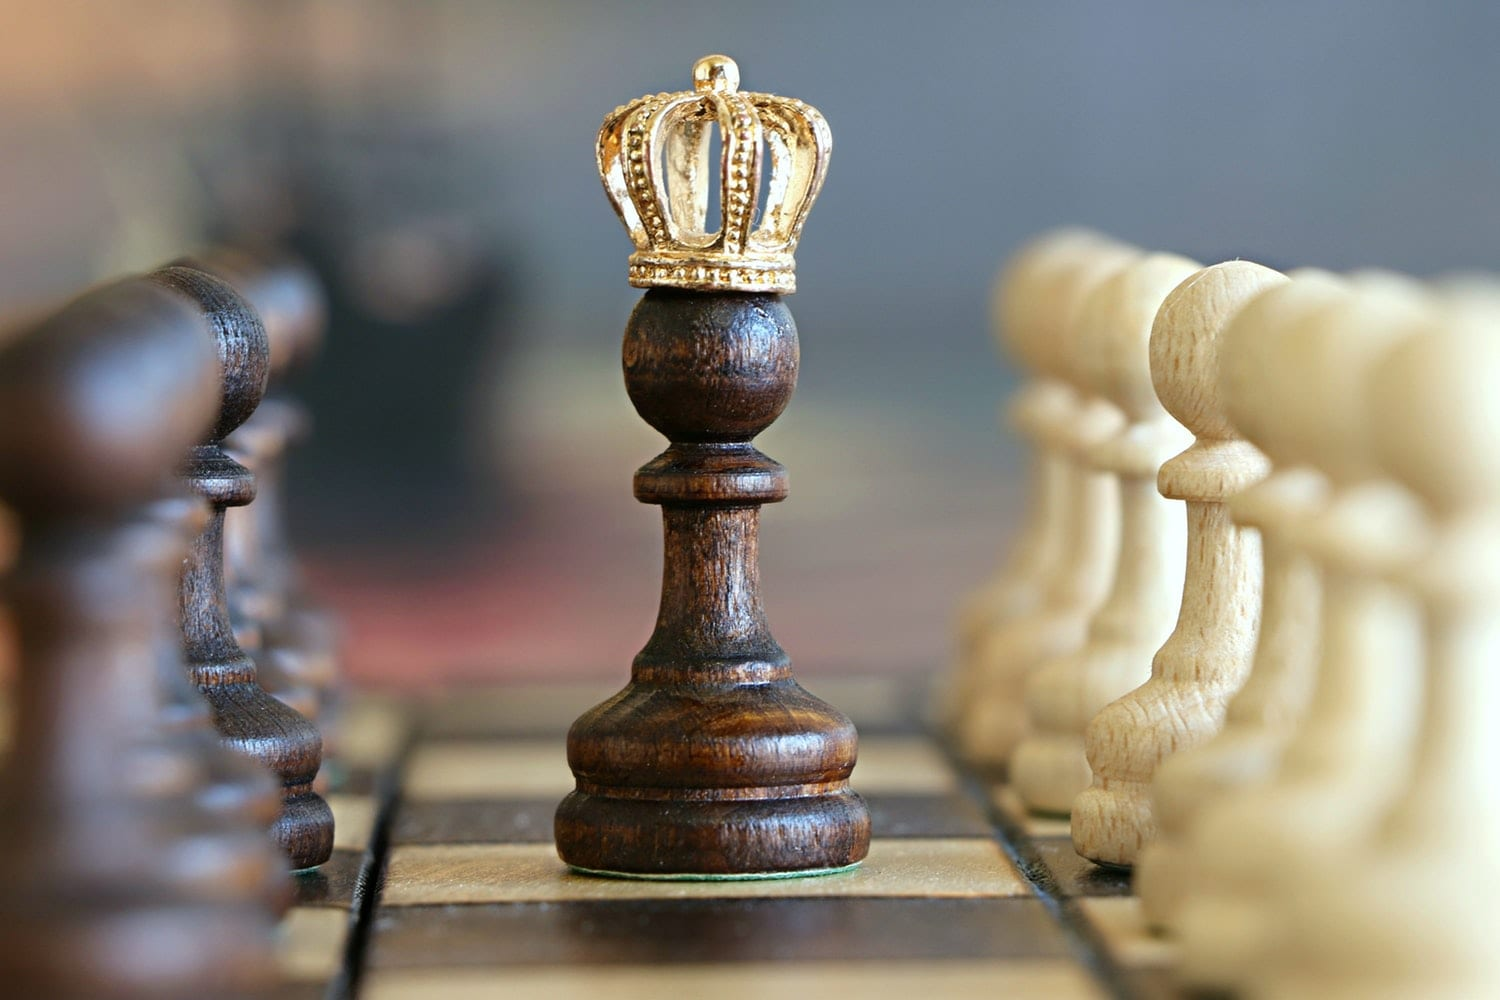 Chess piece with crown